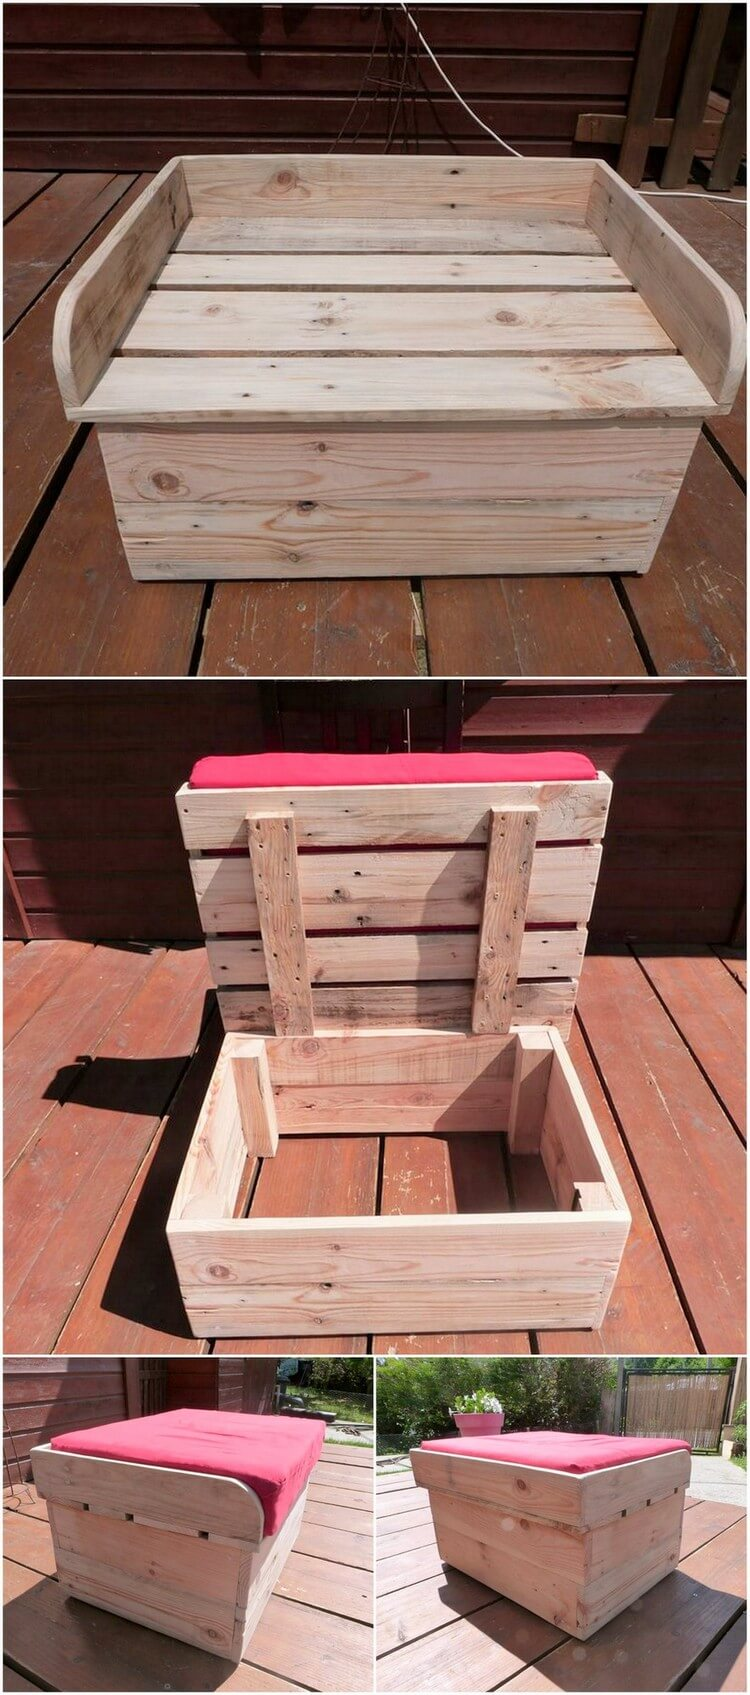 Wood Pallet Seat with Storage Box